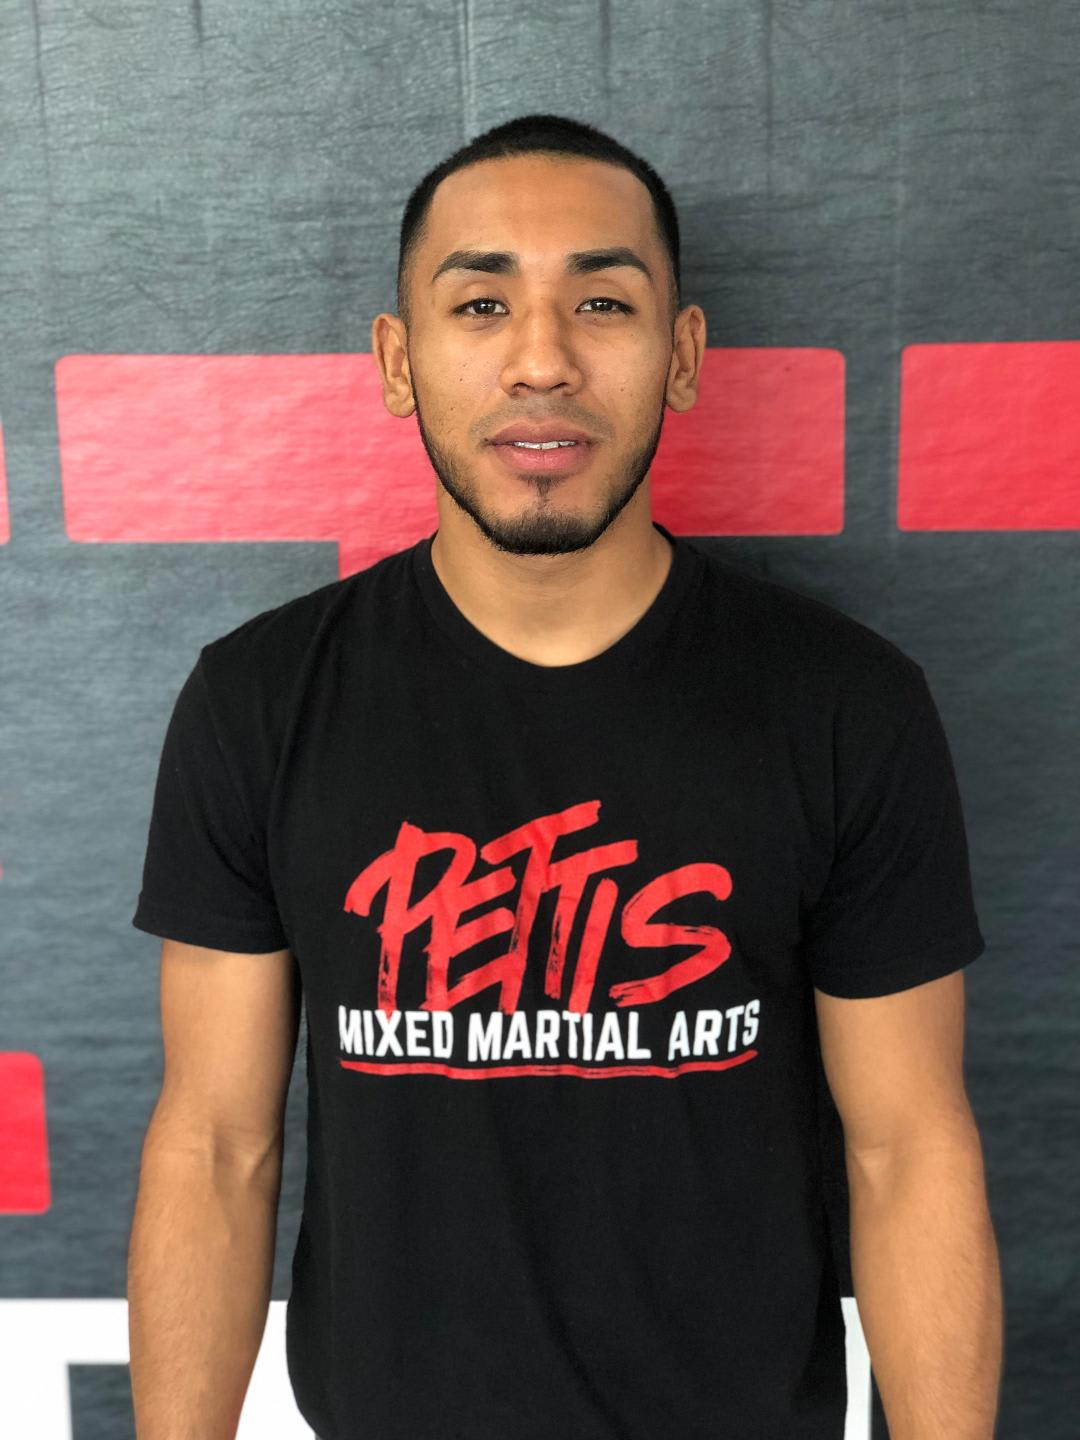 Mixed Martial Arts near Pettis MMA & Showtime Fit